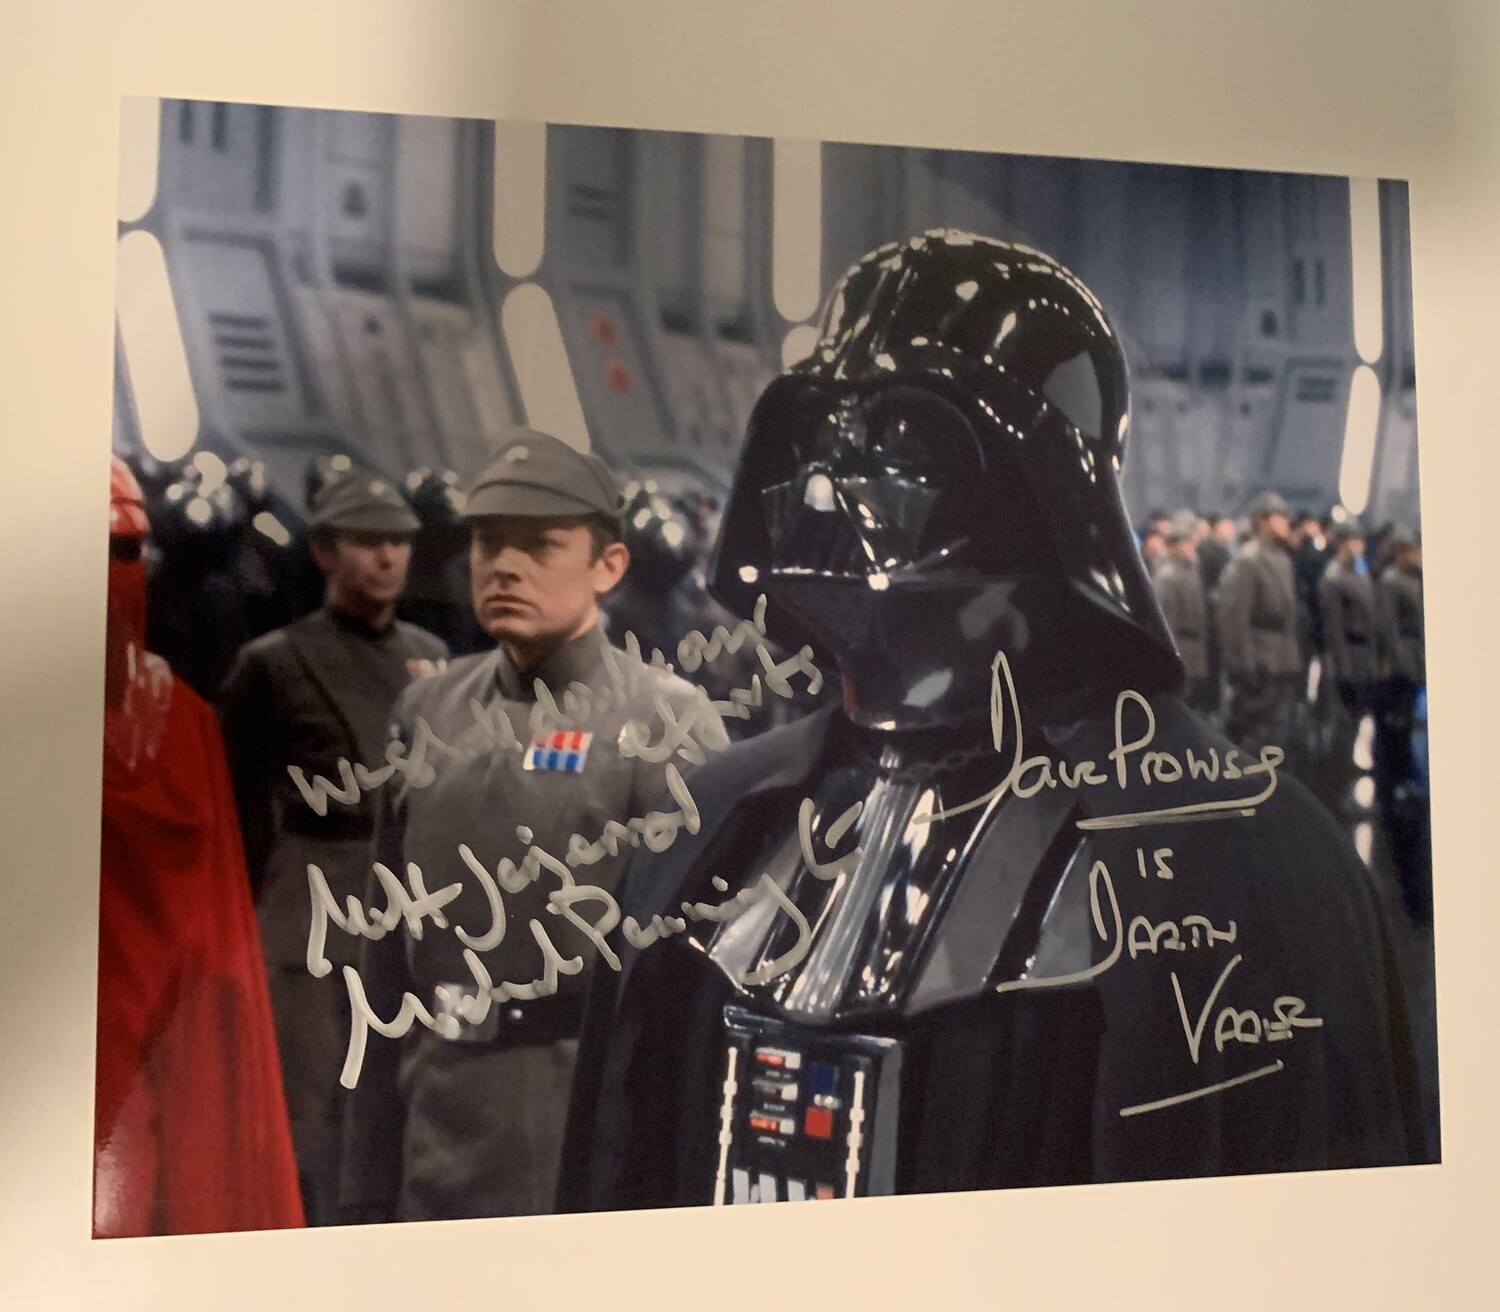 8X10 PHOTO SIGNED BY DAVE PROWSE AND MICHAEL PENNINGTON